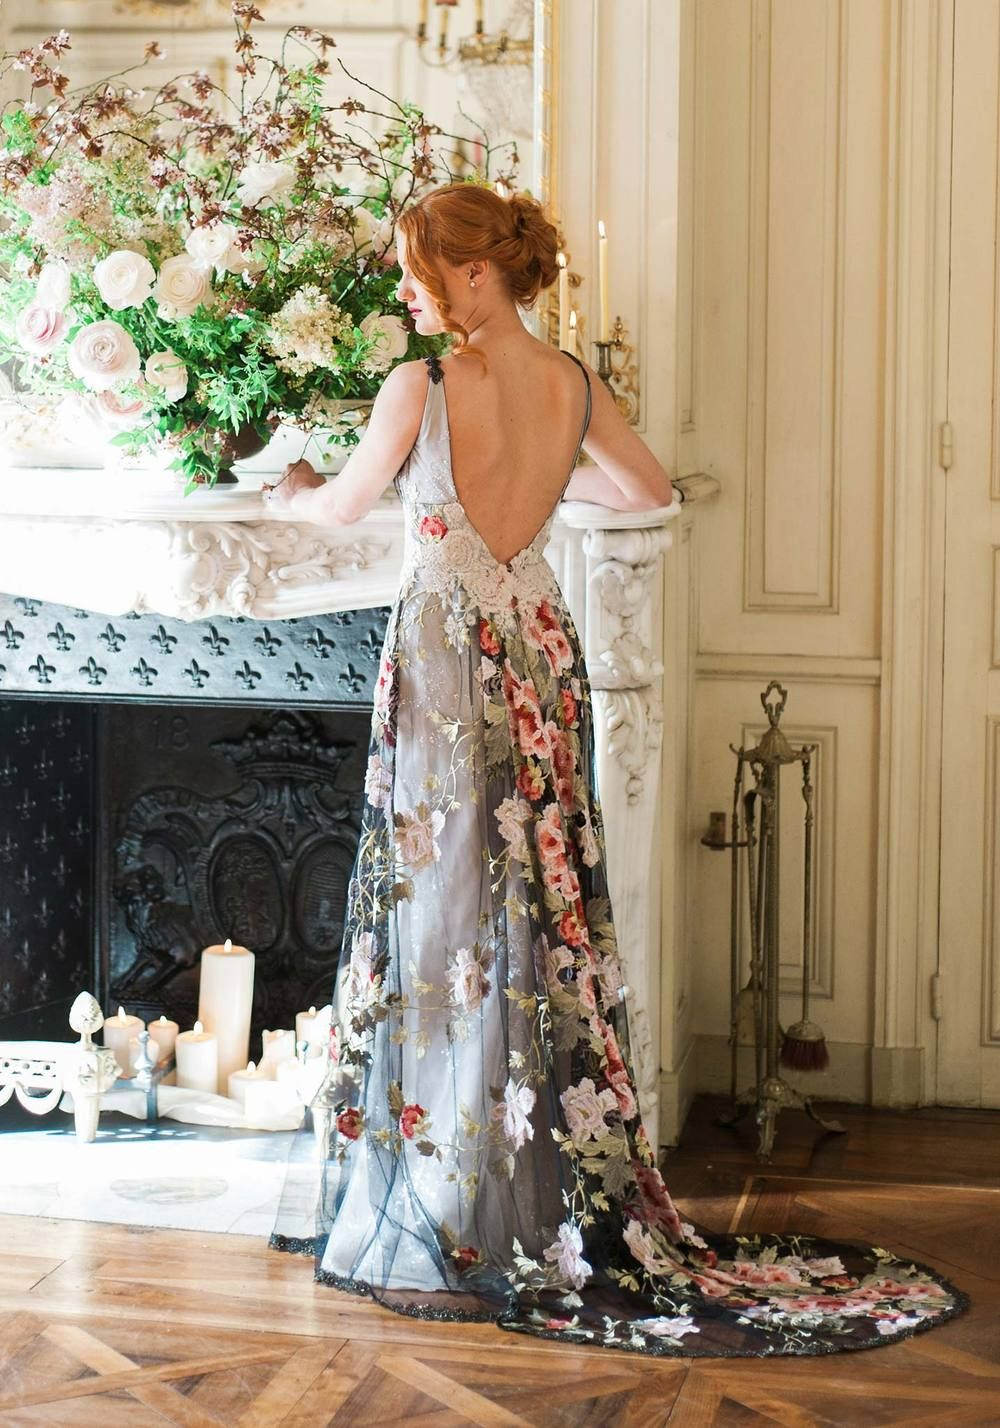 e88b8fd84d6 36 Floral Wedding Dresses That Are Incredibly Pretty